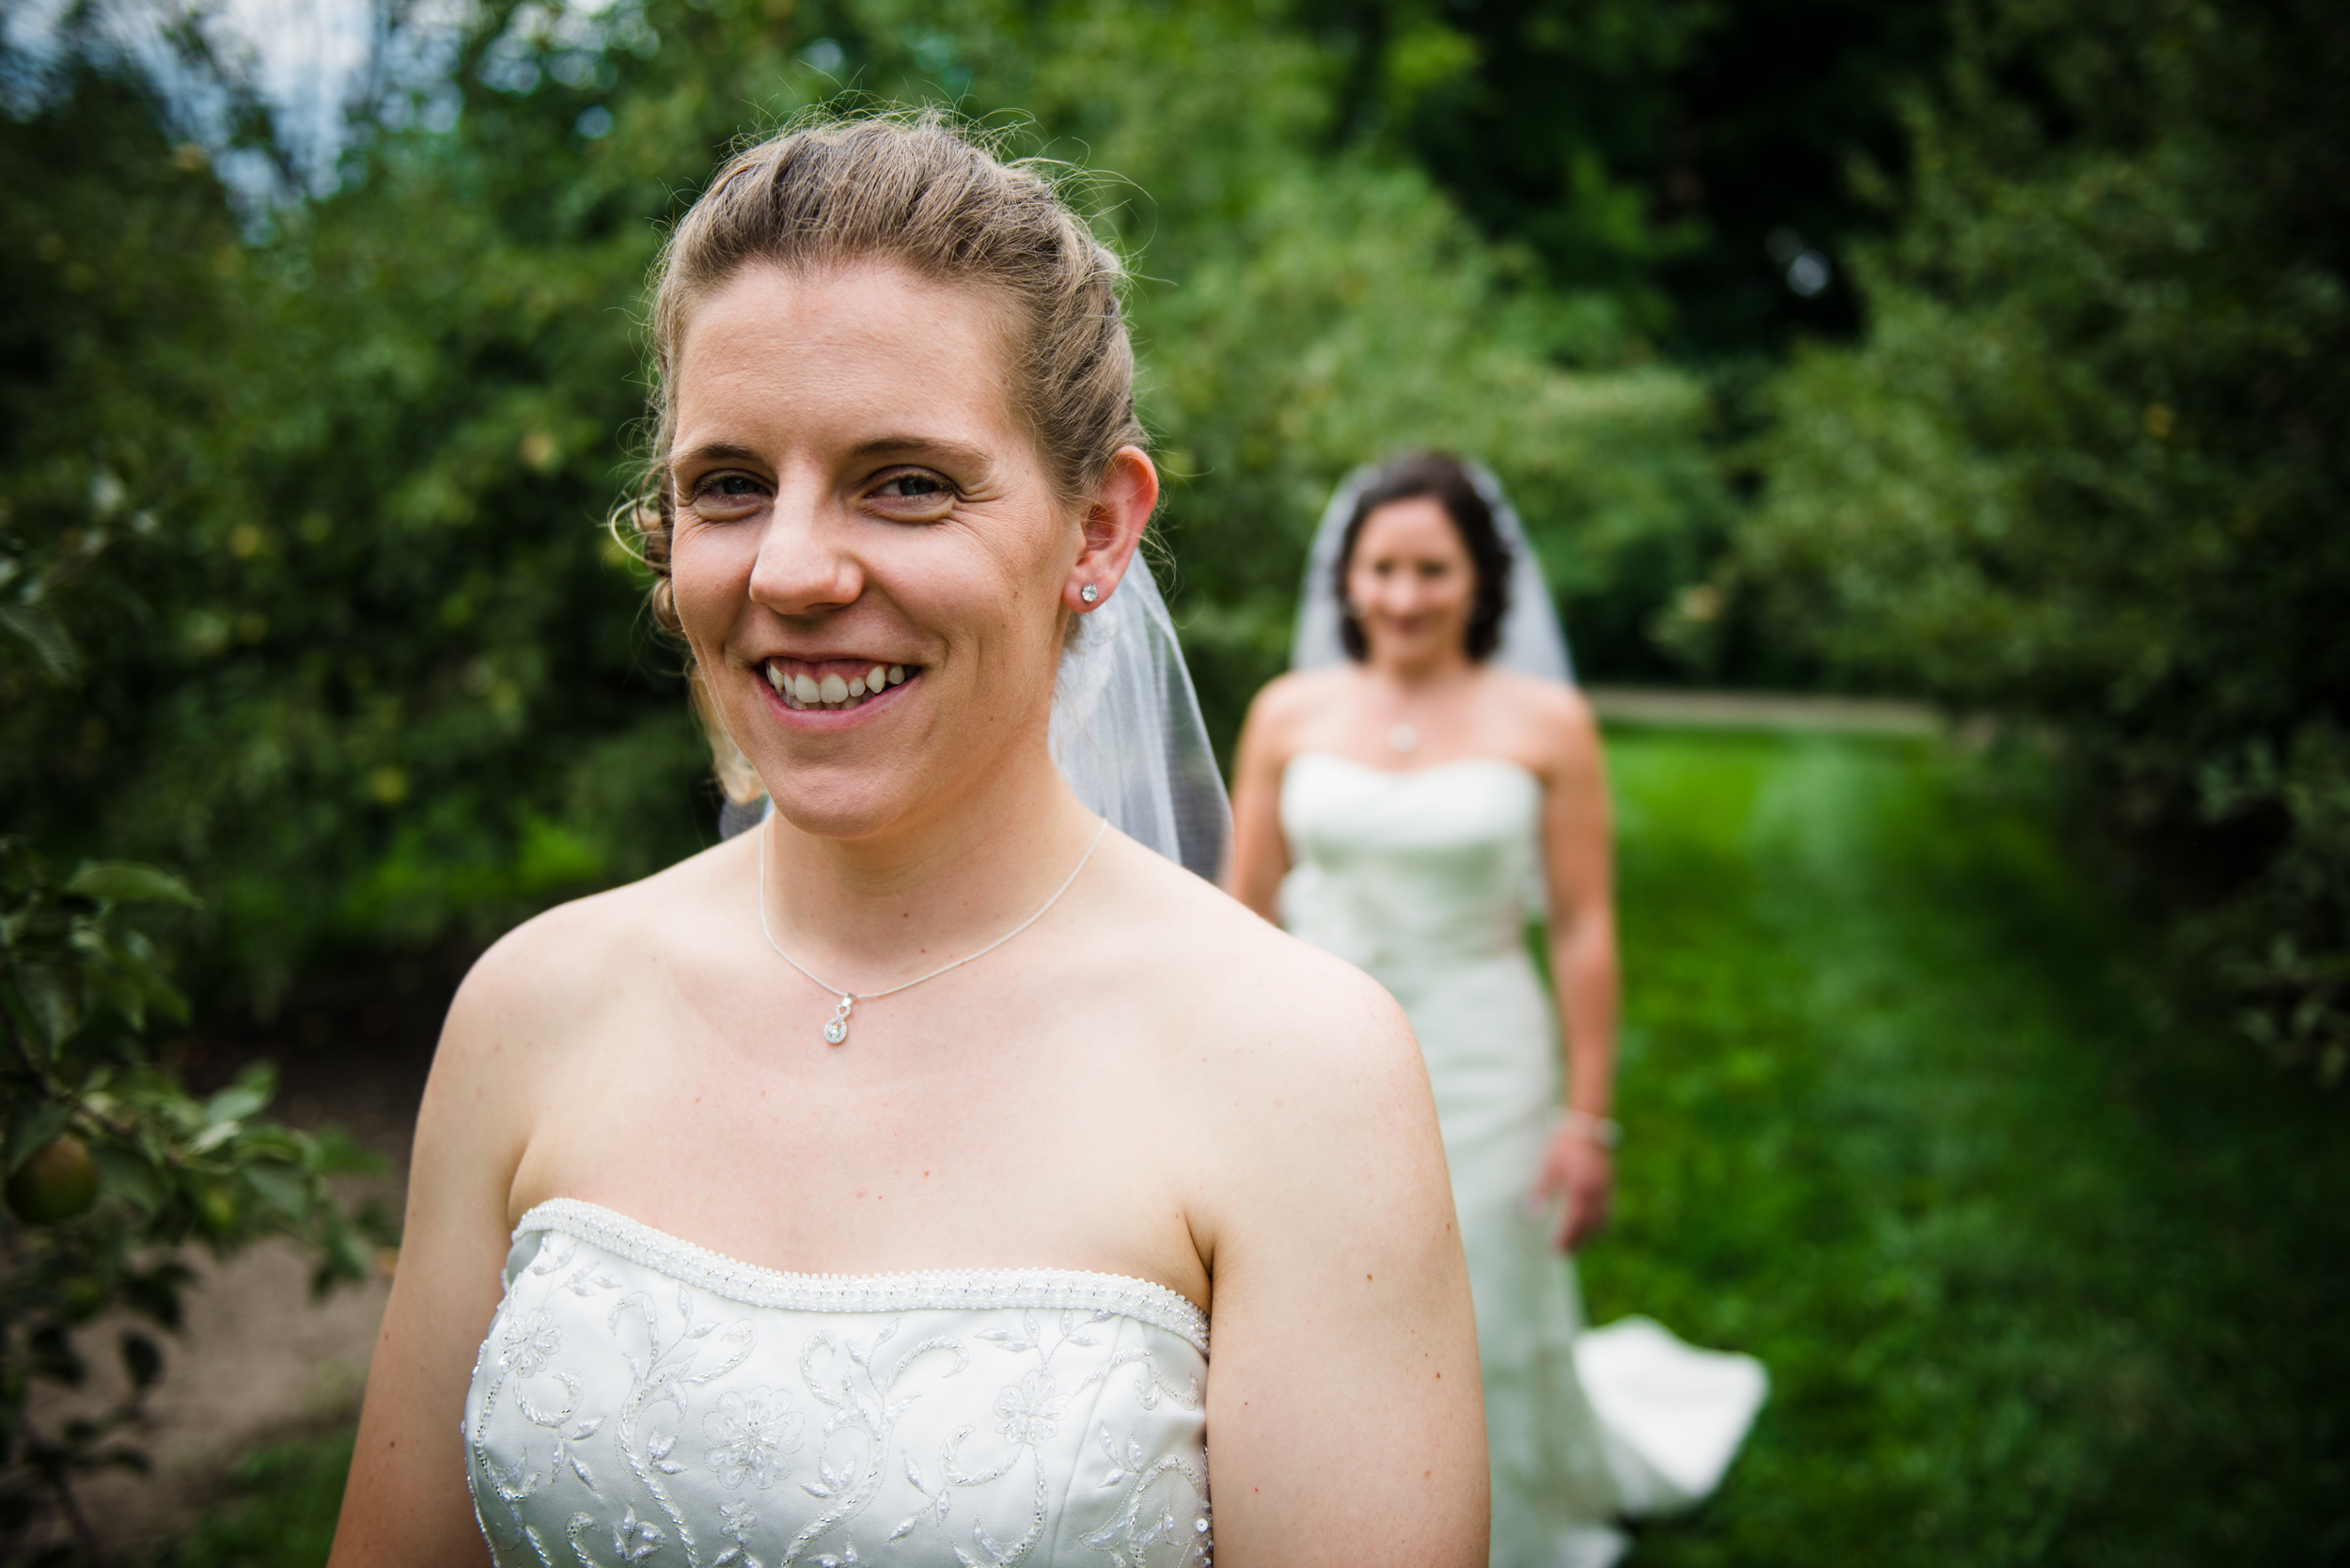 Minnesota LGBT Wedding Photography - Megan and Trista - RKH Images - First Look (19 of 60).jpg